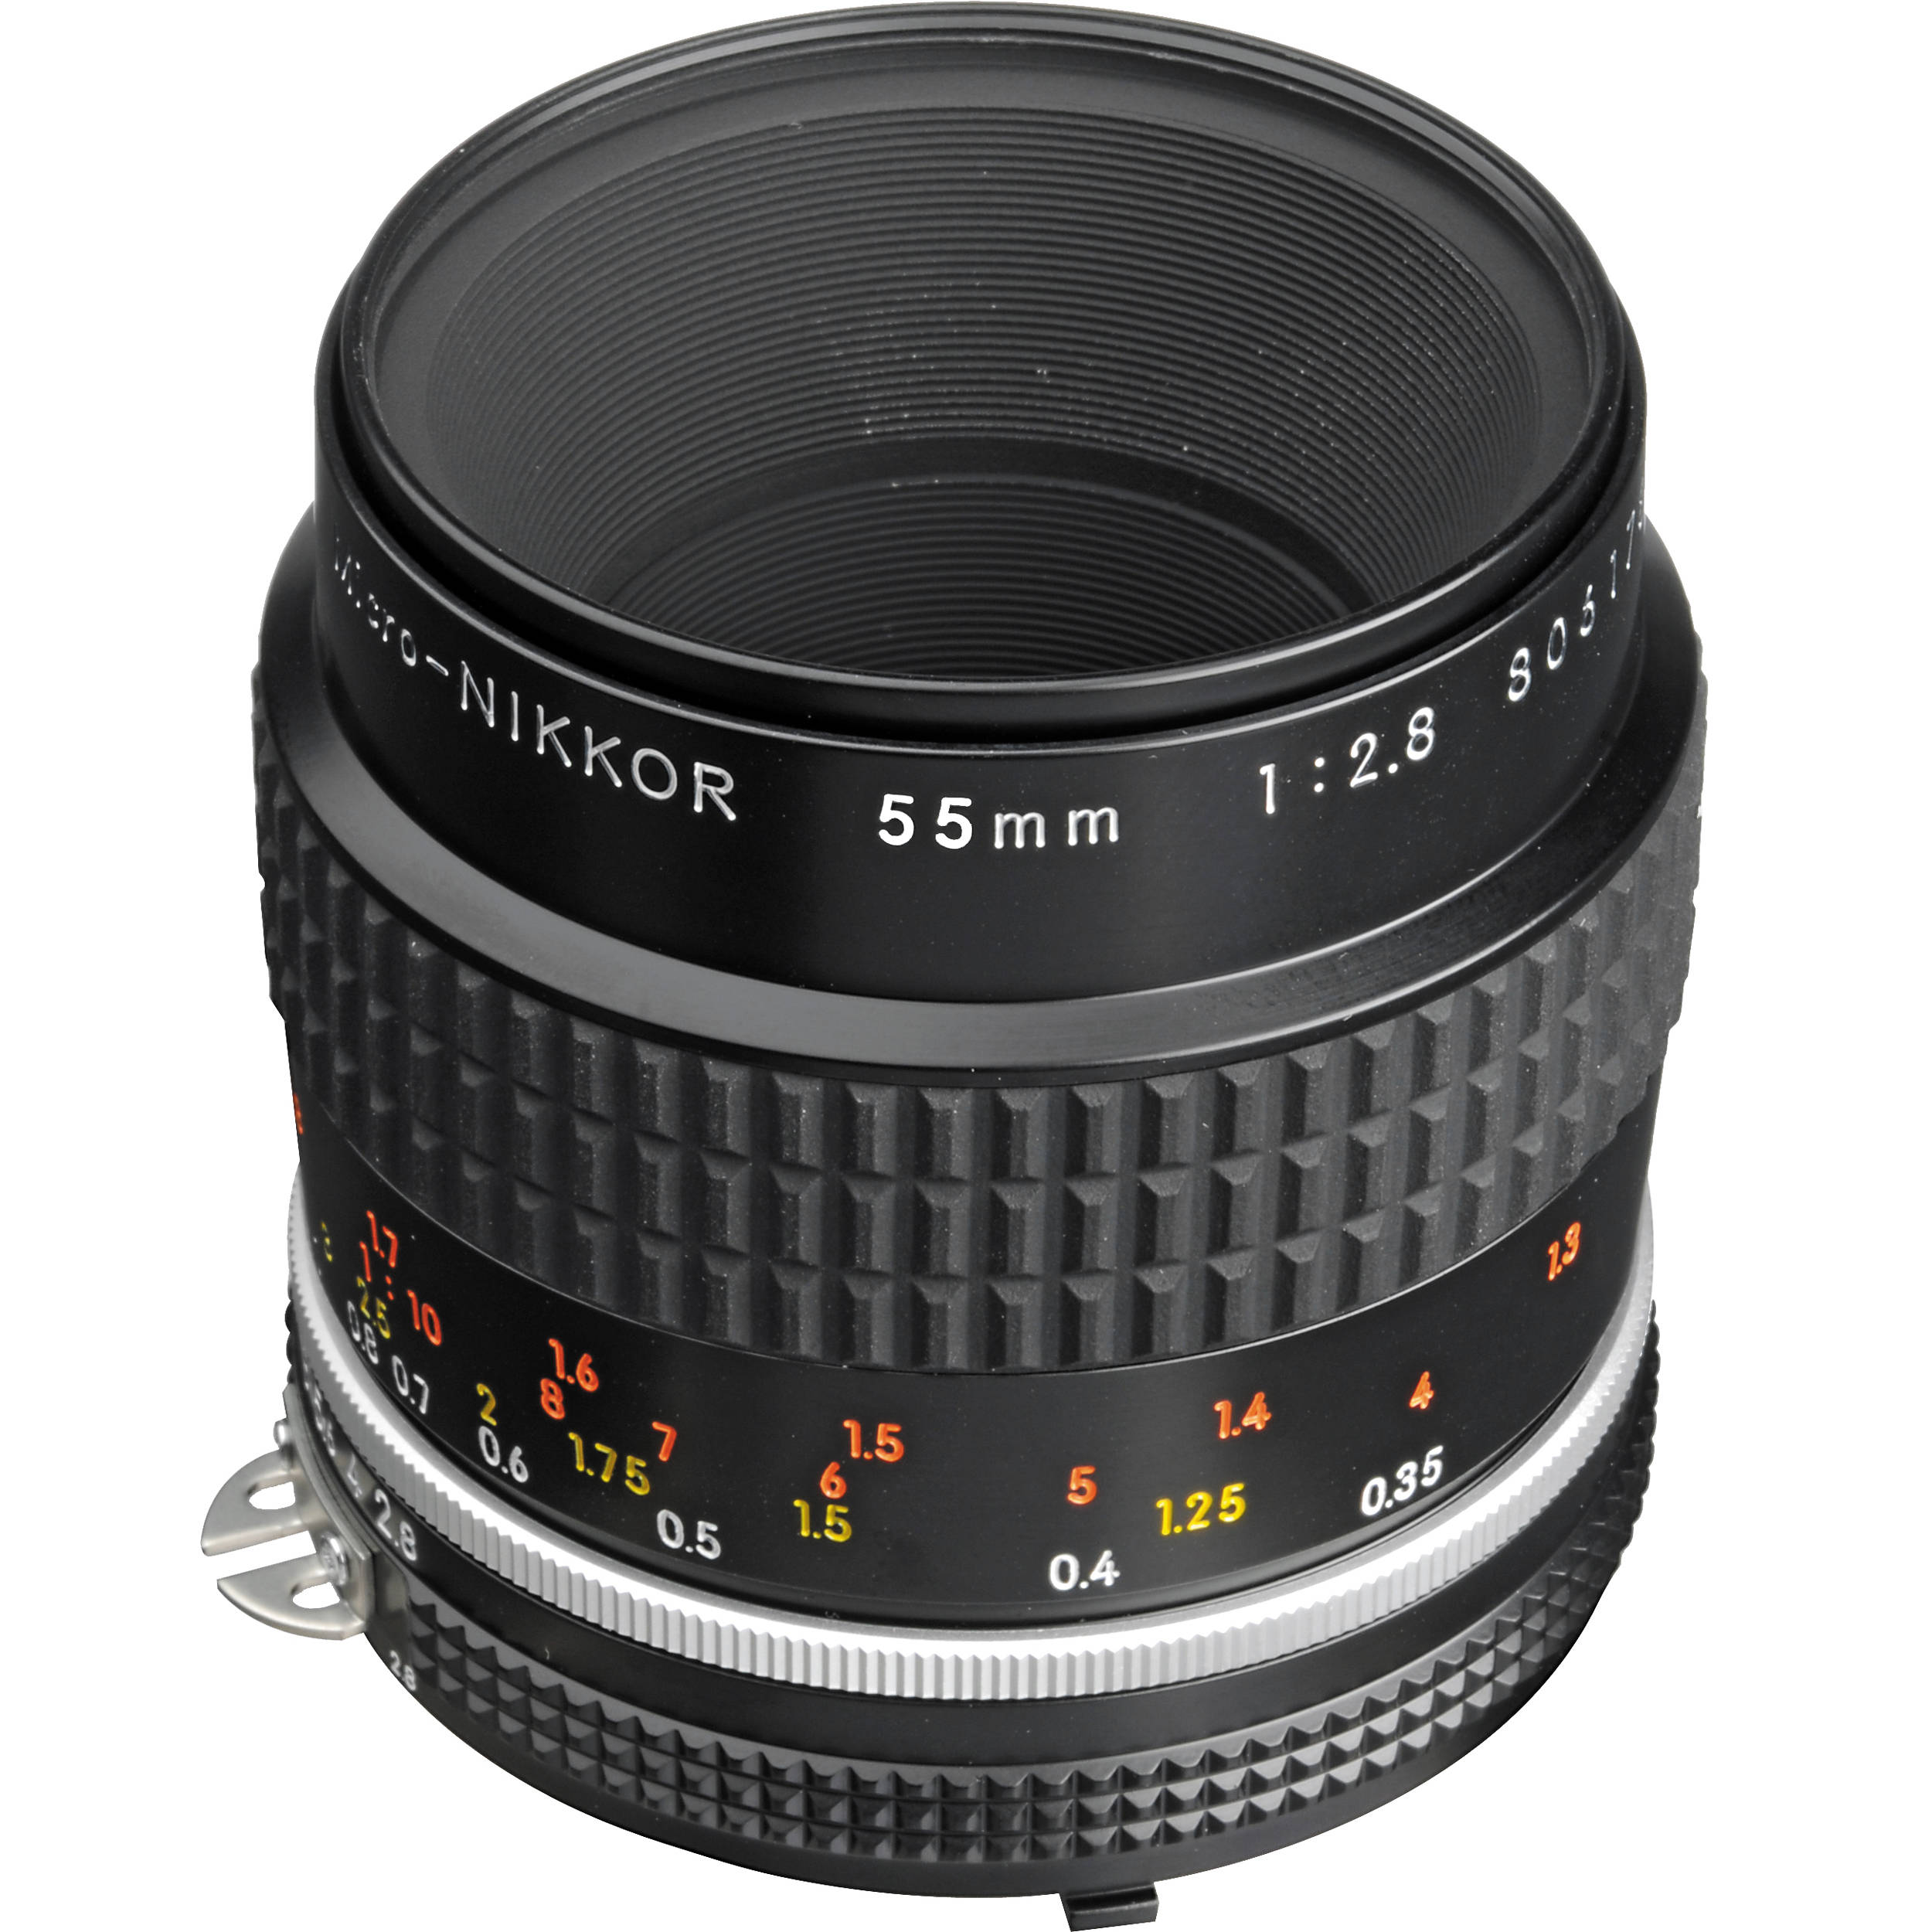 Best Value Old Manual Focus Nikkor Lenses For The Z6 Nikon Z Mirrorless Talk Forum Digital Photography Review